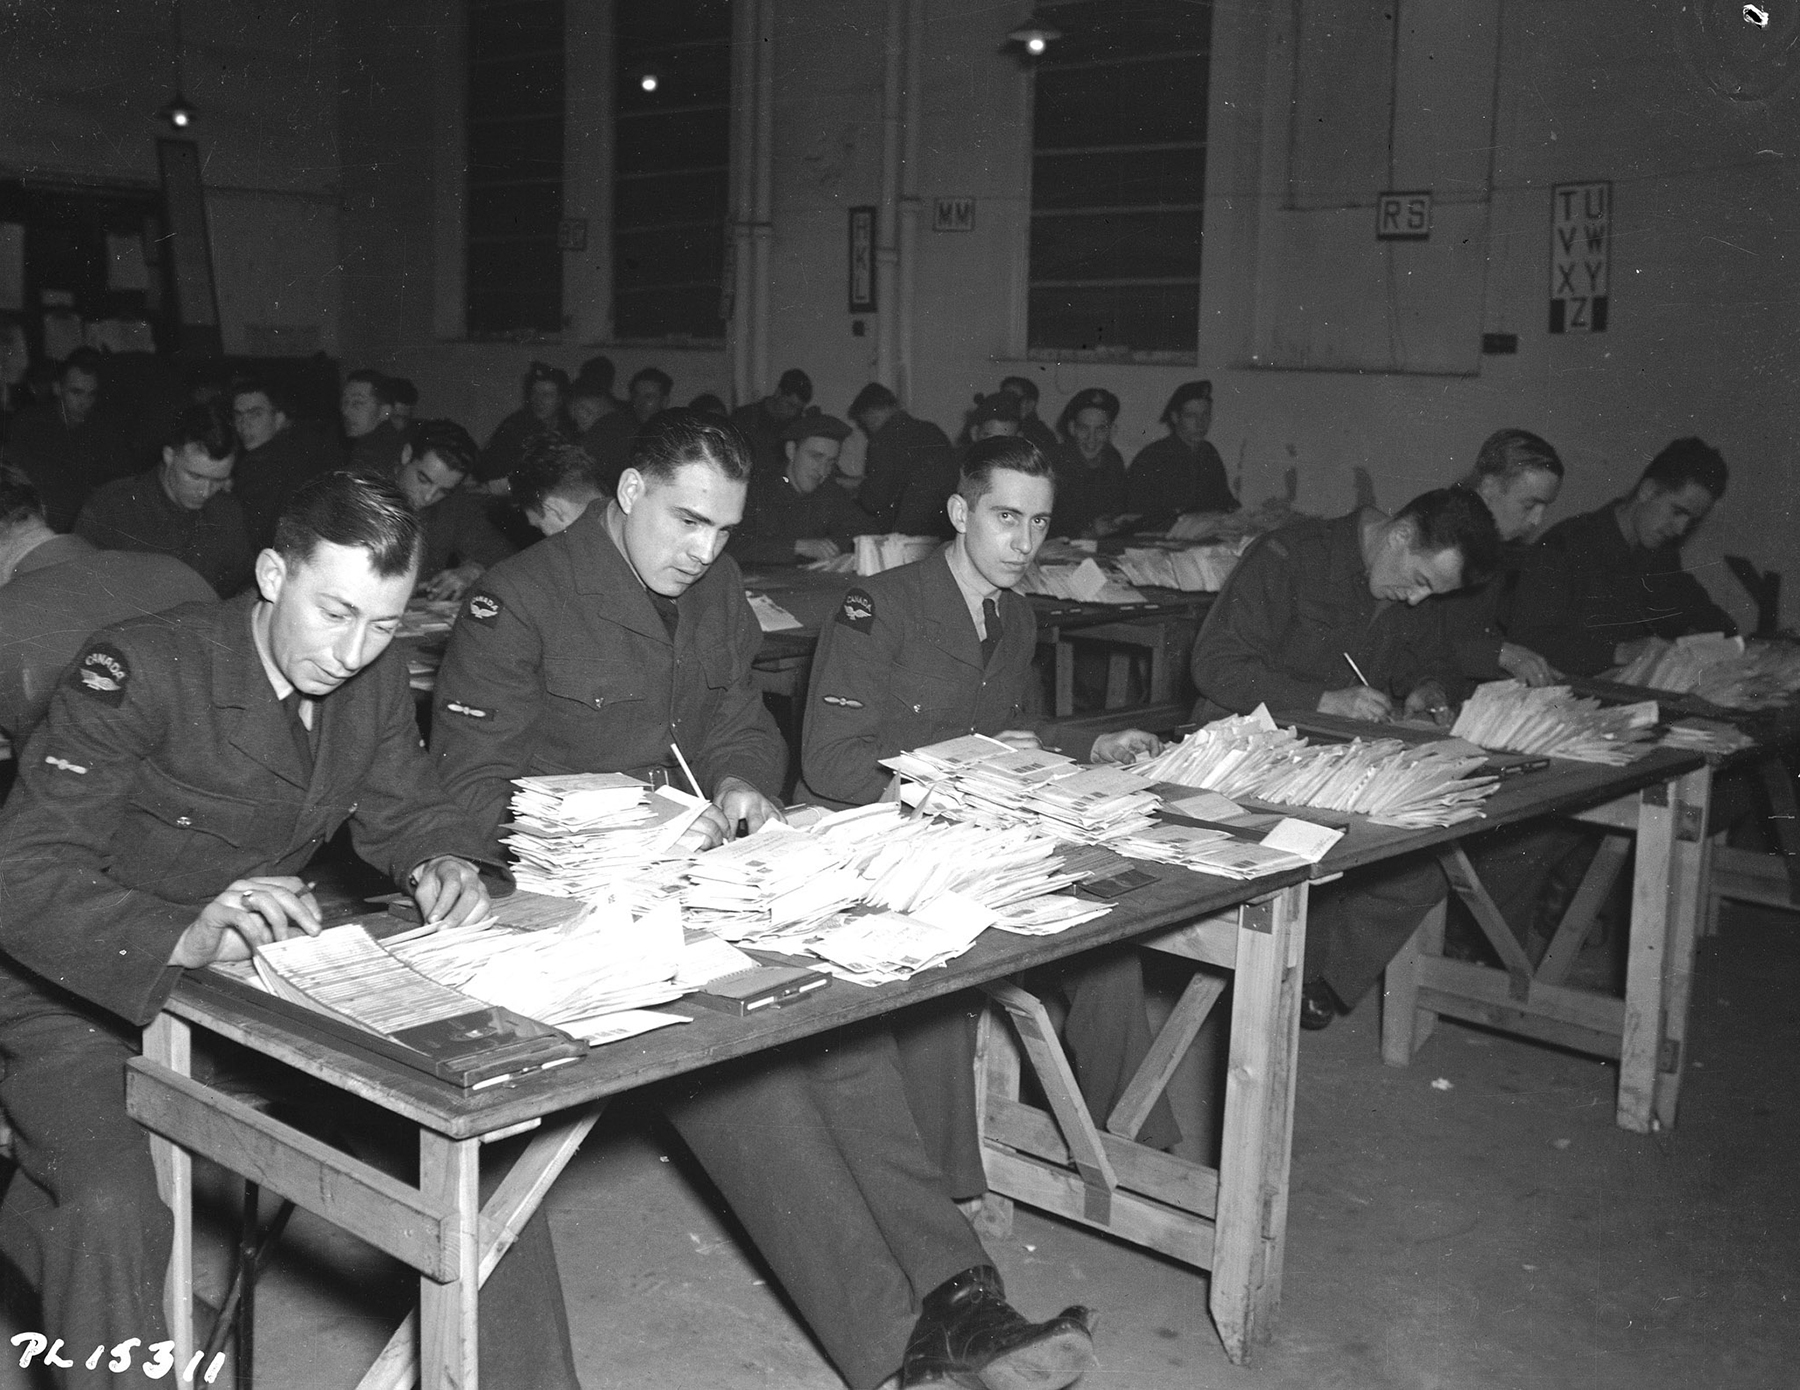 Members of the RCAF Postal Corps, including Leading Aircraftman R.V. Duguid (Montreal, Quebec), Leading Aircraftman J.N. Vandal (Winnipeg, Manitoba) and Leading Aircraftman J.S. Prescott (Toronto, Ontario), check the address of every letter to members of the RCAF Overseas. PHOTO: DND Archives